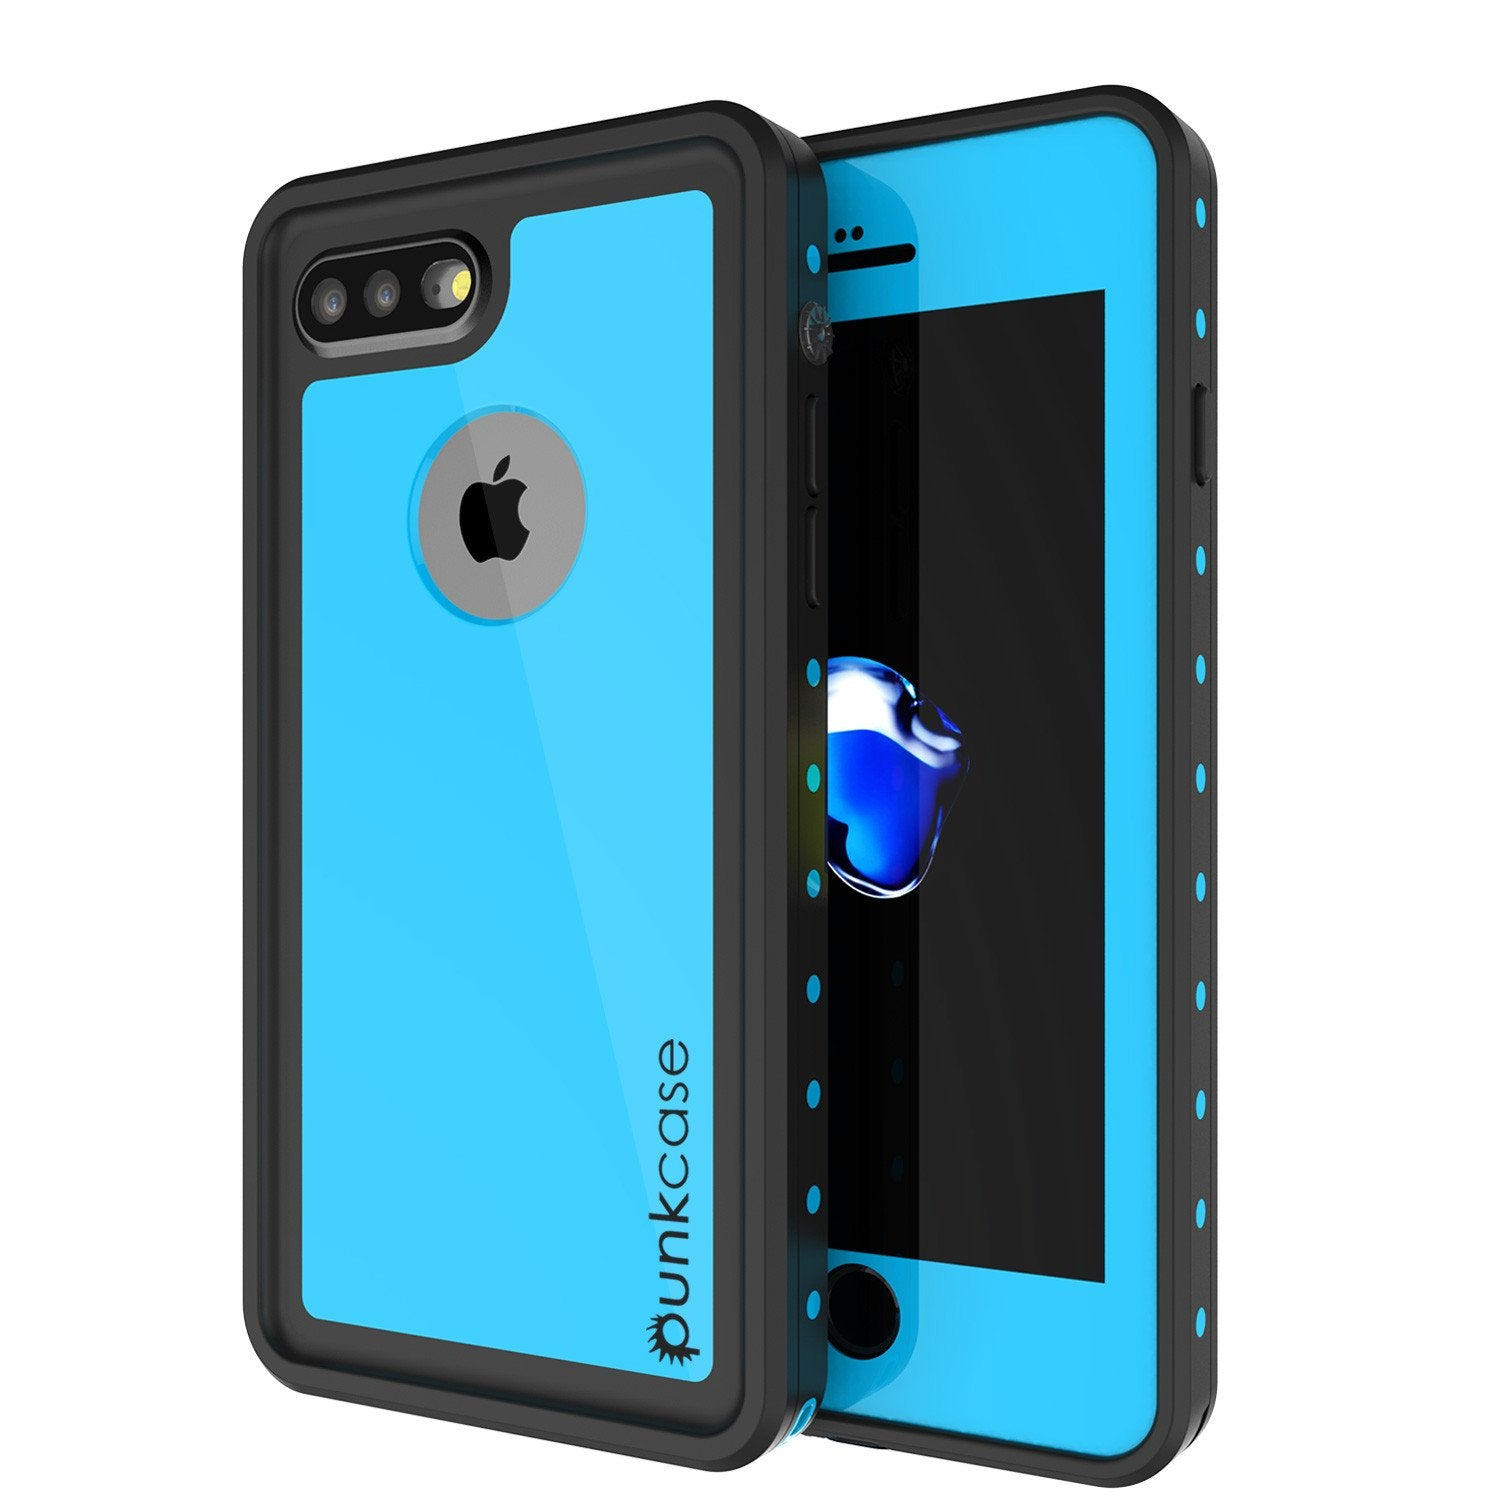 iPhone 7+ Plus Waterproof IP68 Case, Punkcase [Light Blue] [StudStar Series] [Slim Fit] [Dirtproof] - PunkCase NZ